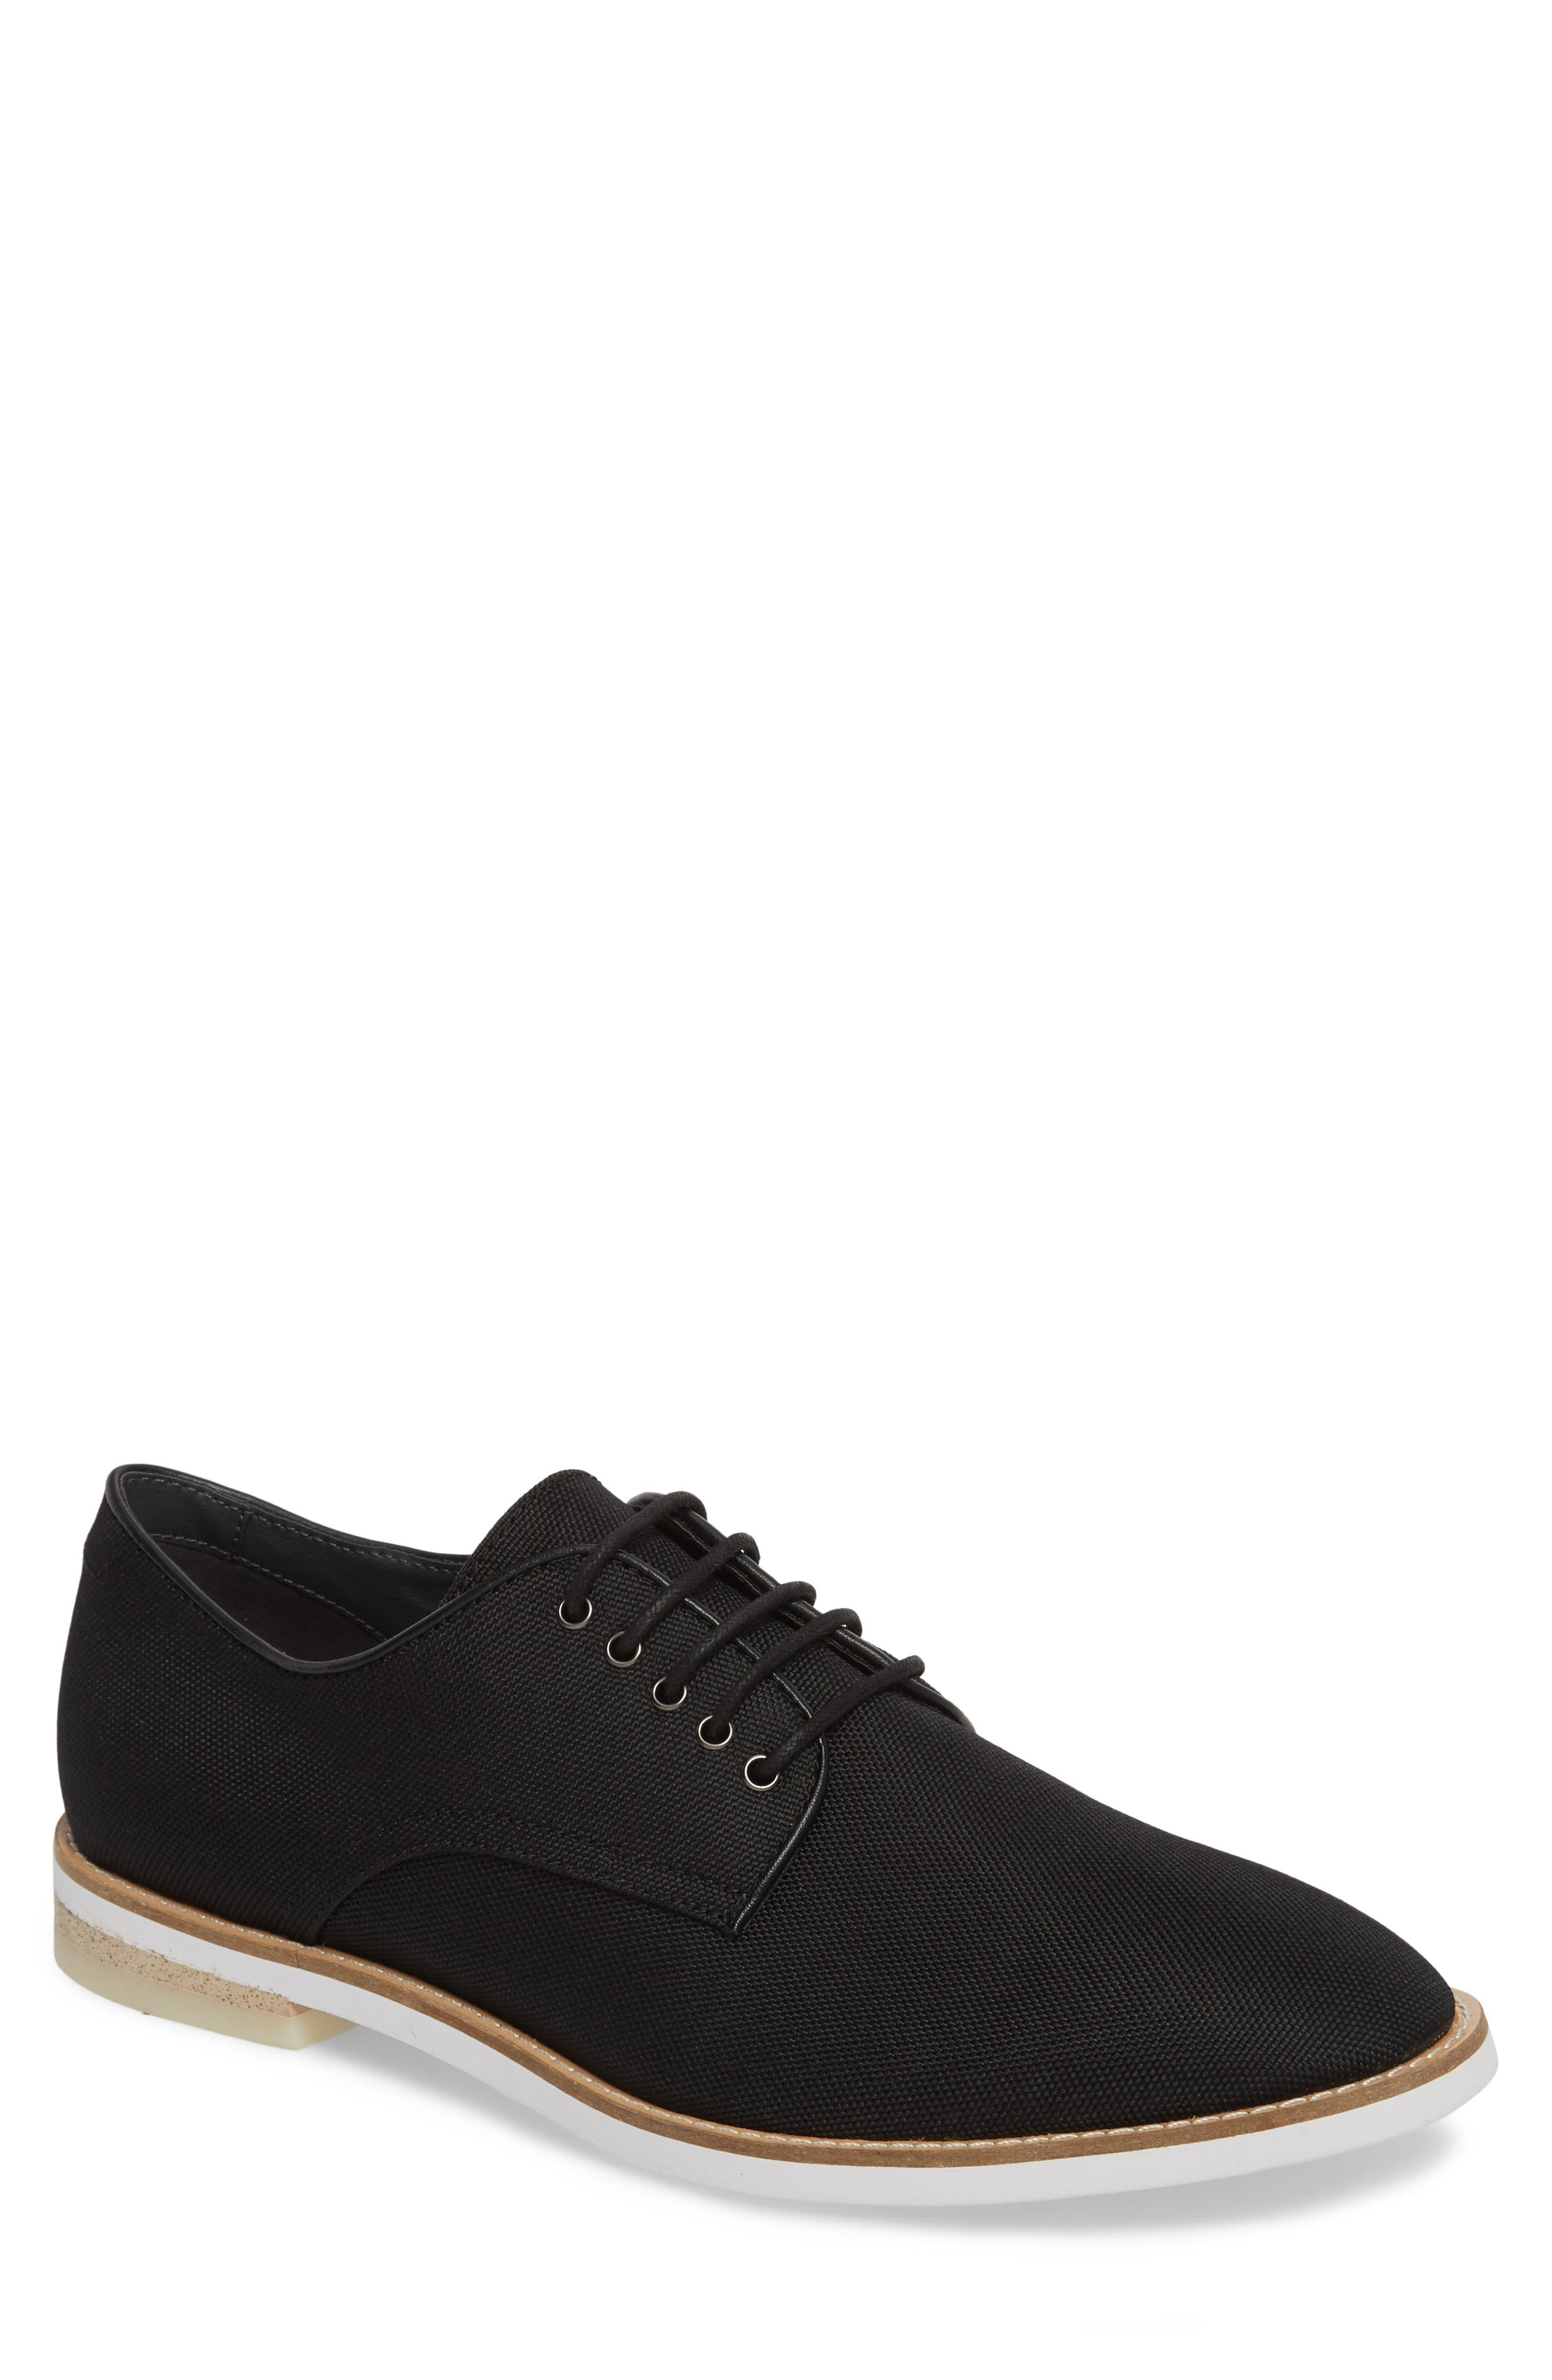 Atlee Plain Toe Derby,                             Main thumbnail 1, color,                             BLACK SYNTHETIC